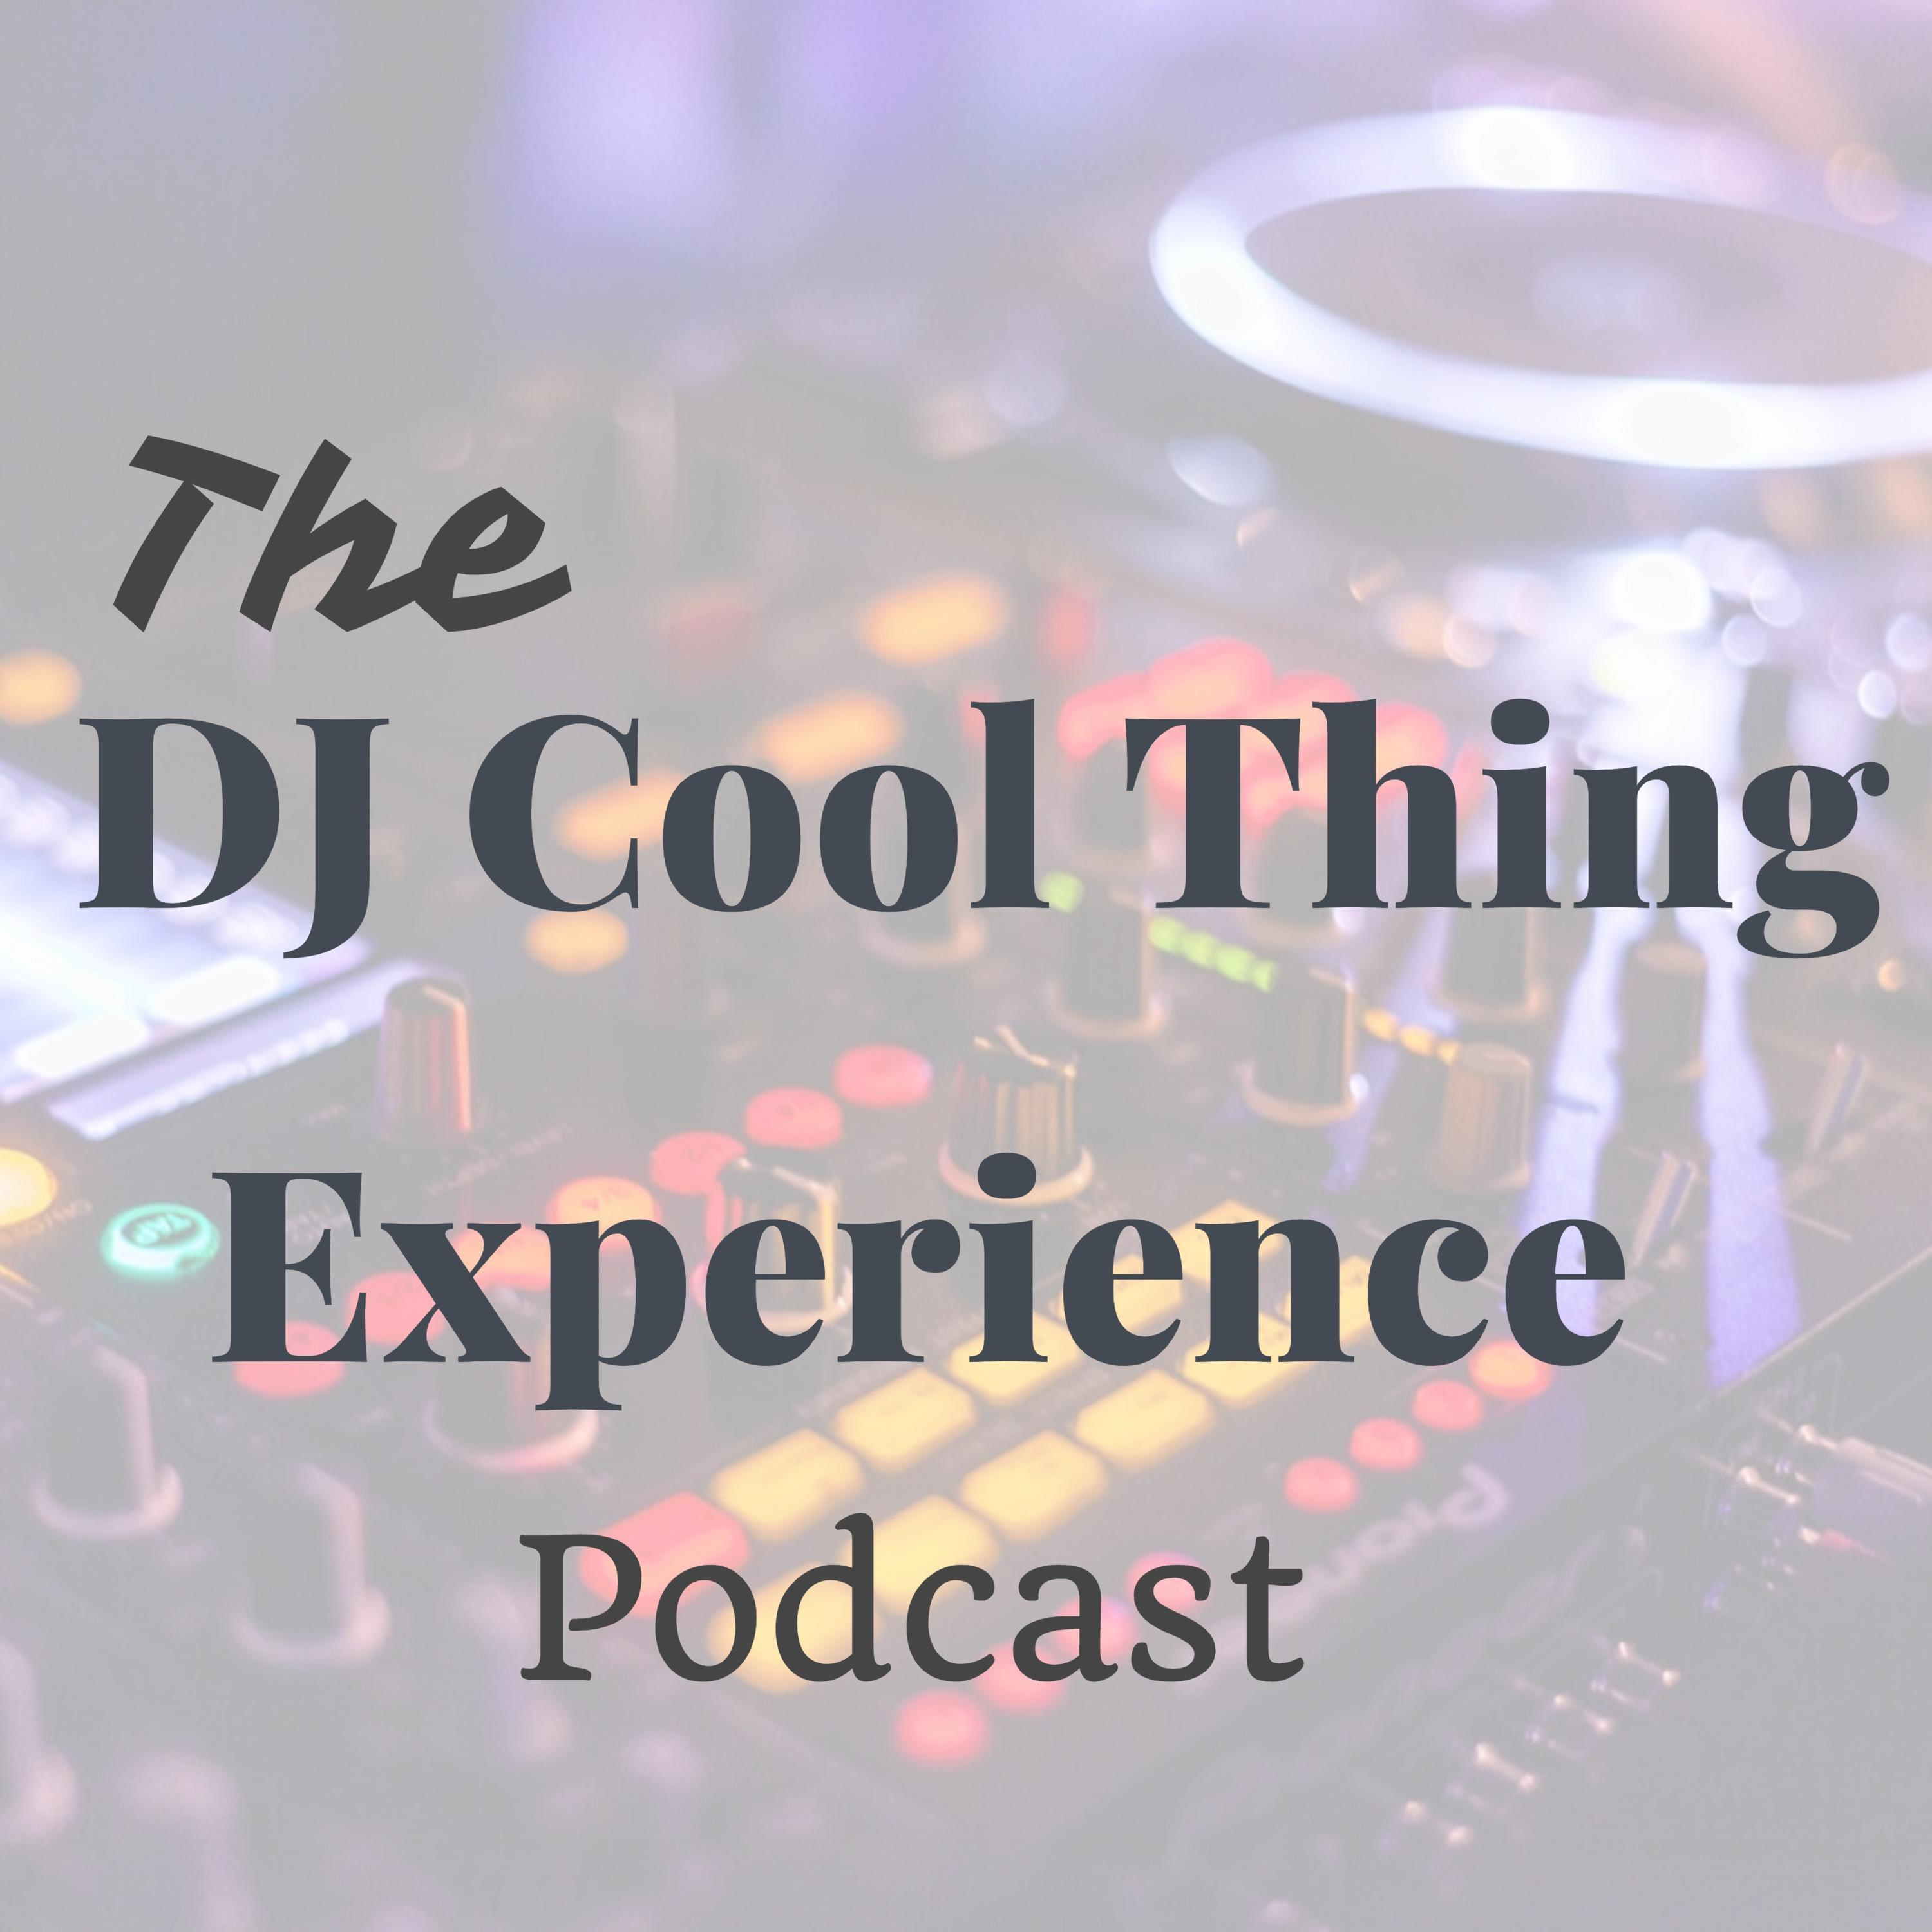 Episode 4-How to Build a Beginner's DJ Booth